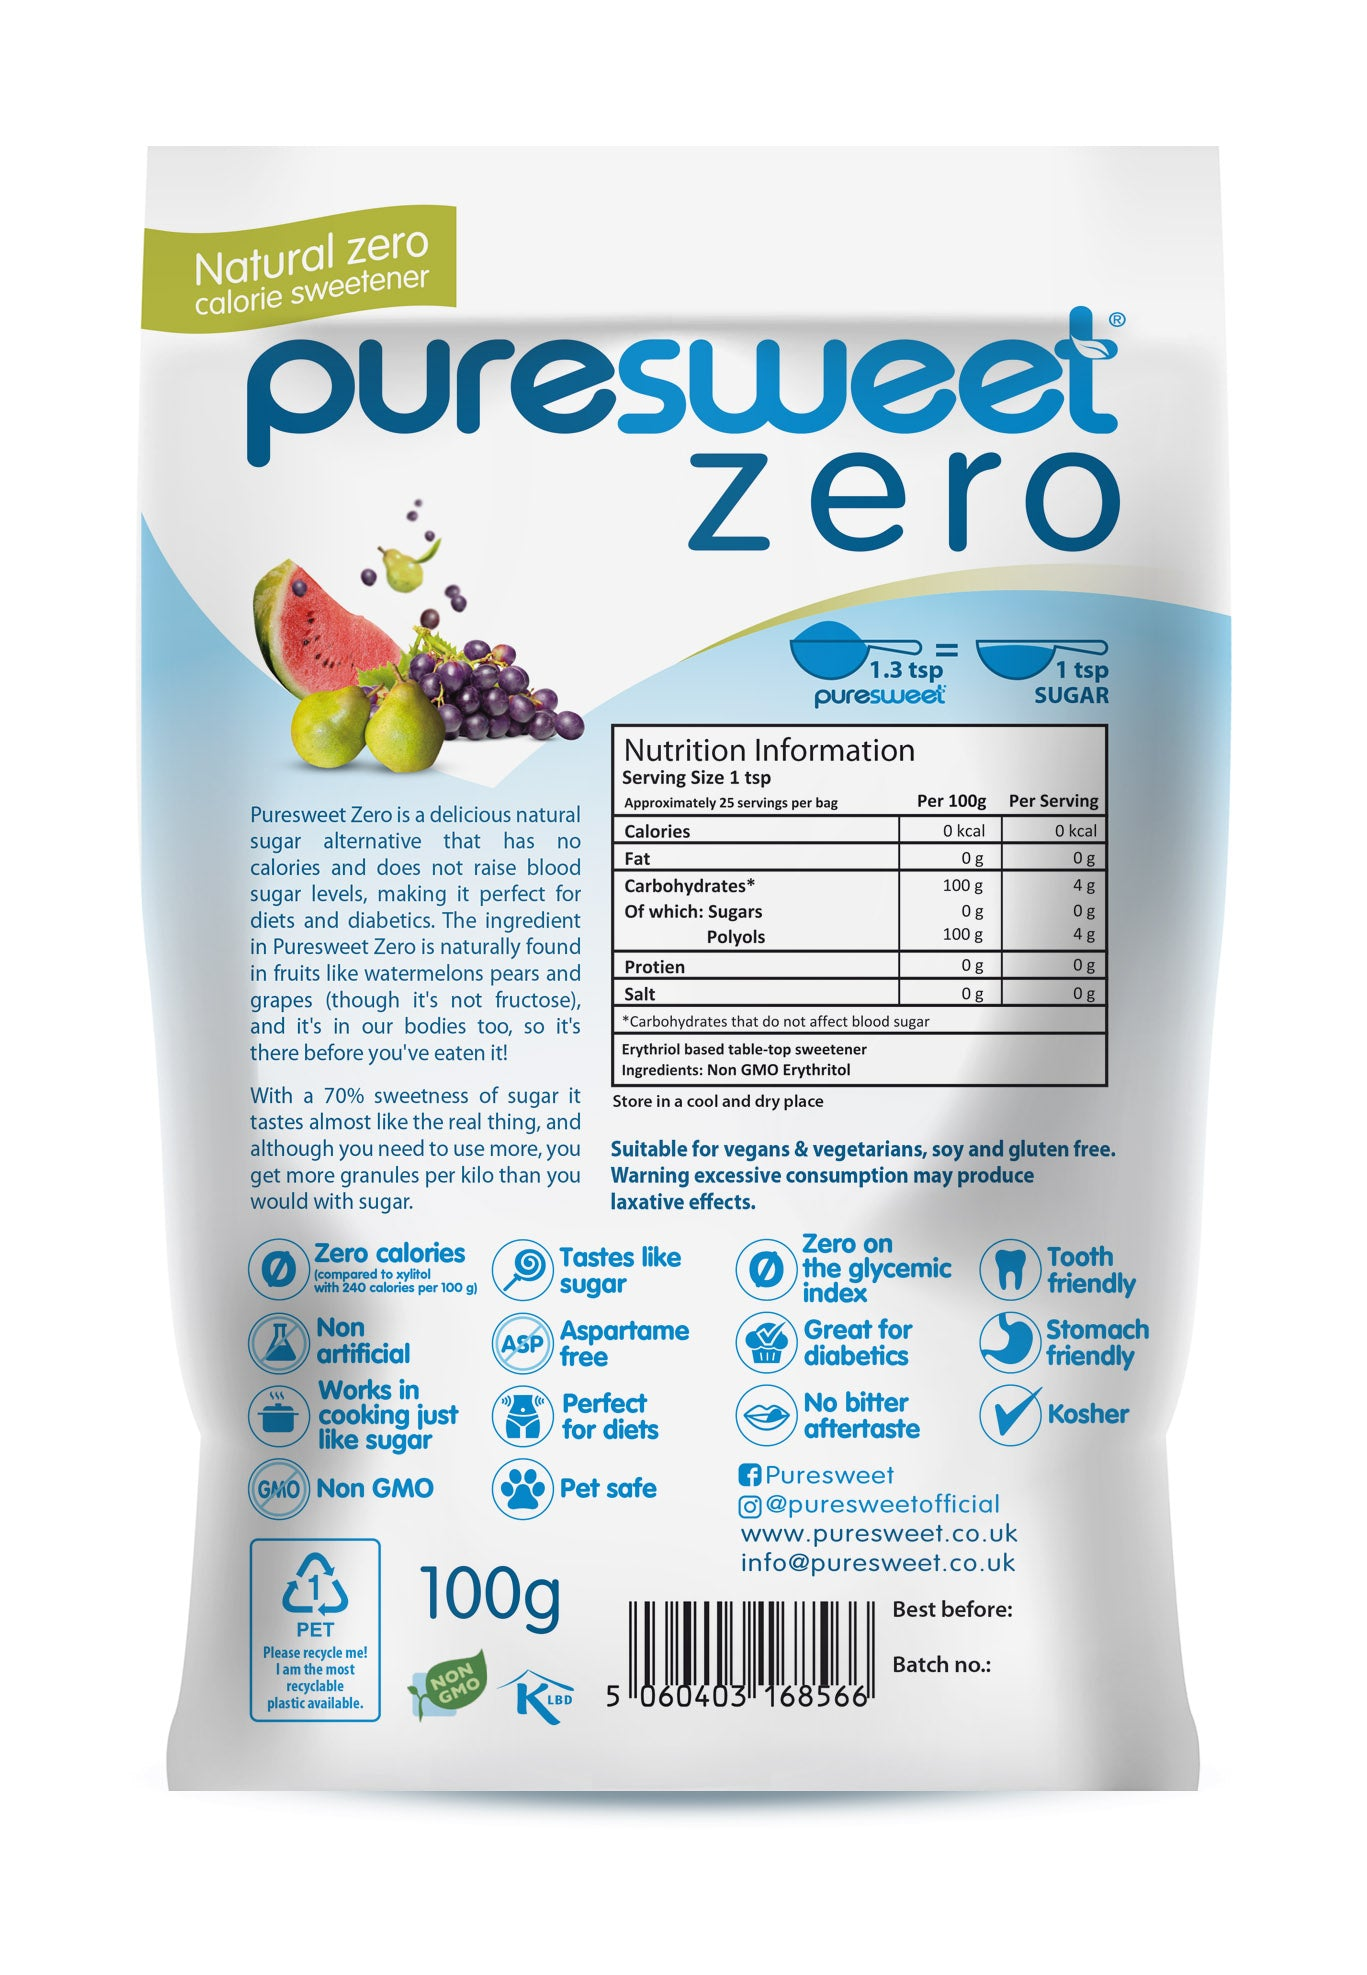 Puresweet Premium Natural Zero Calorie Sweetener Sample Bag 25g